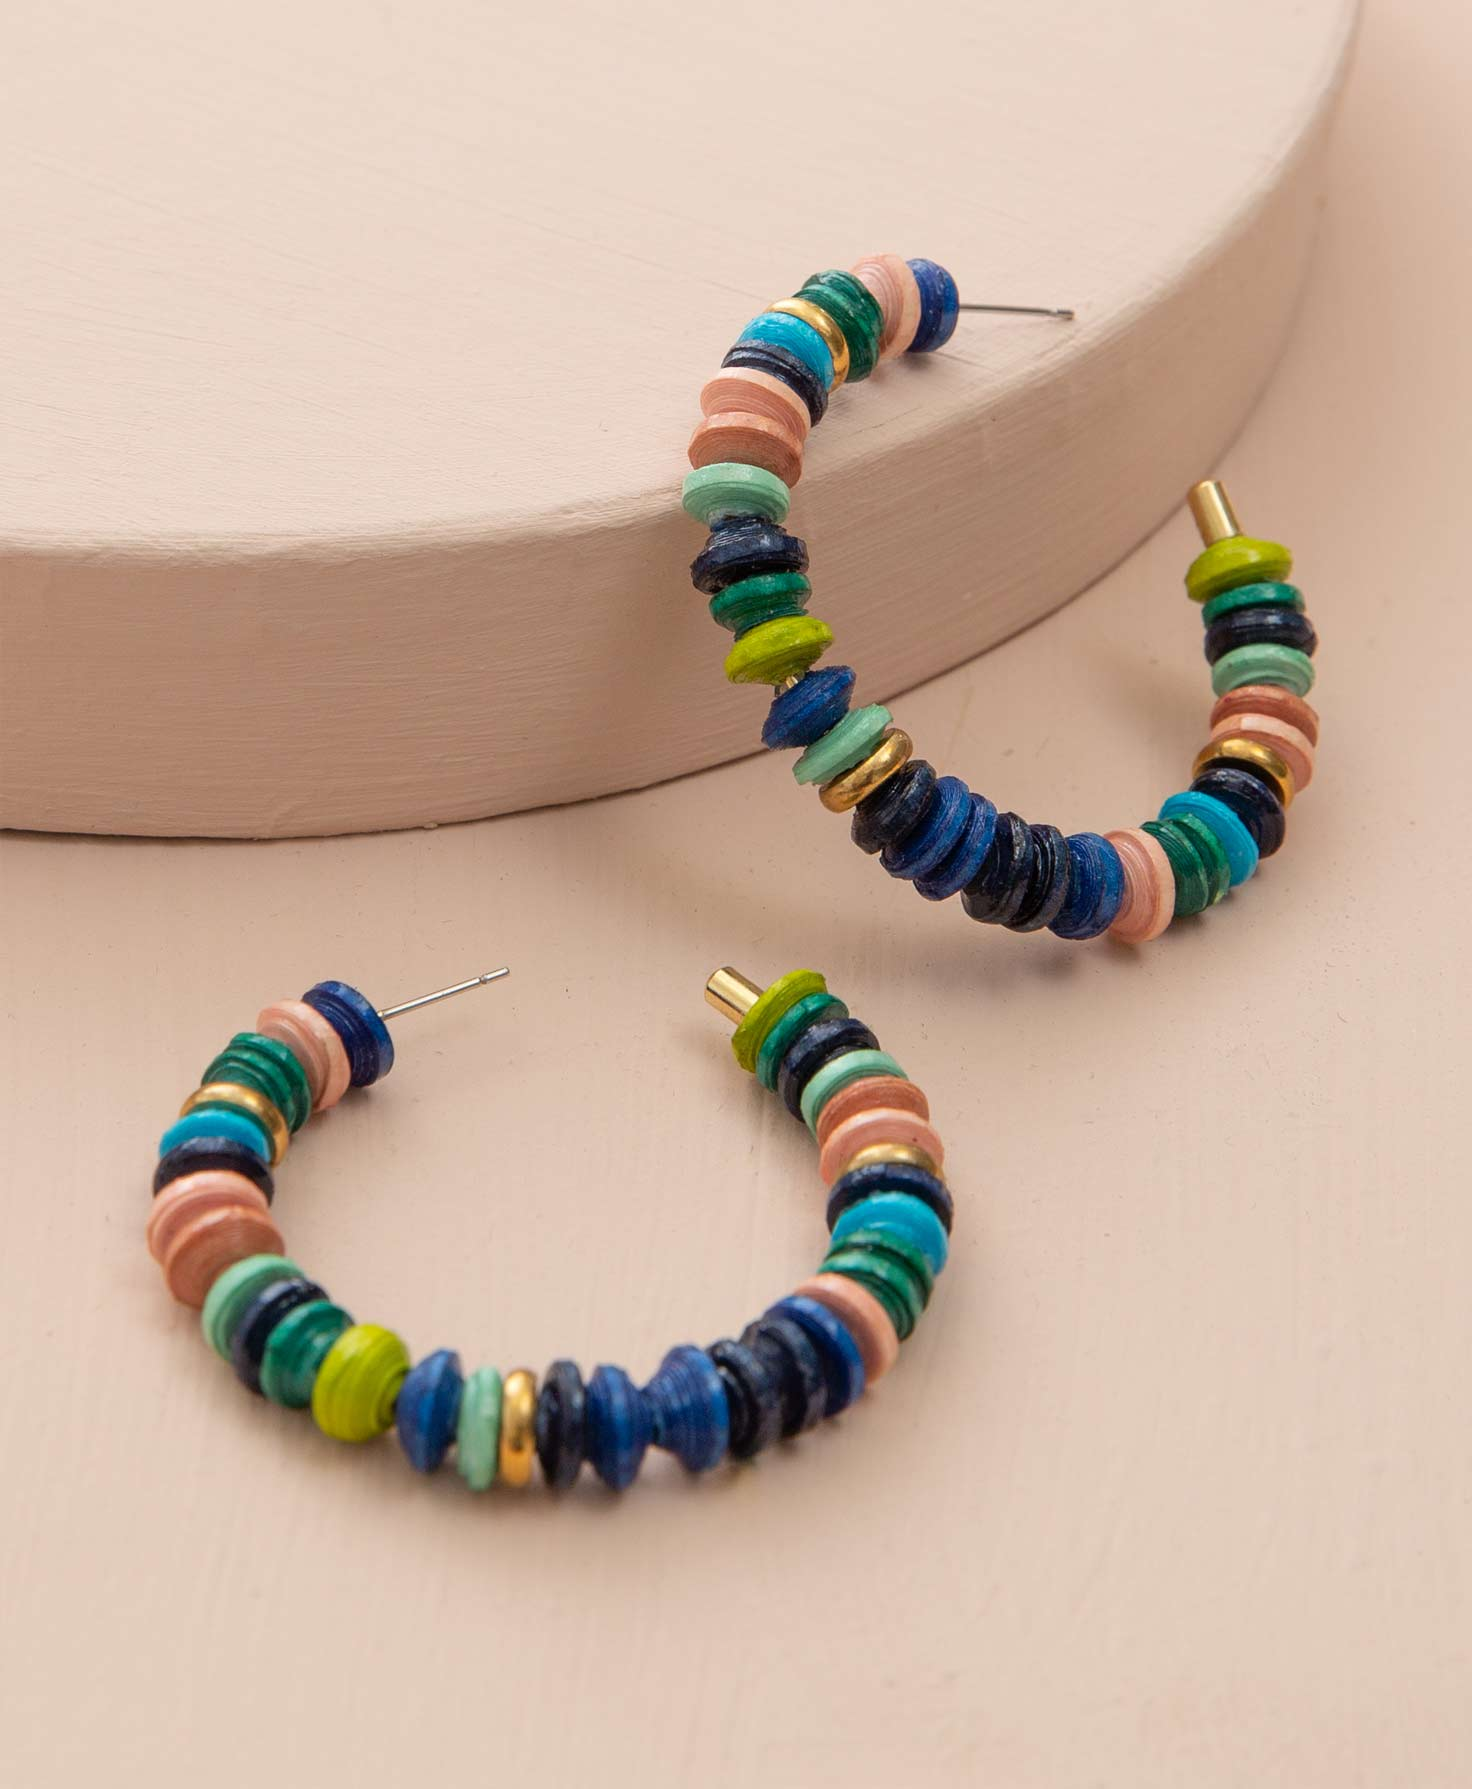 The Venture Hoops rest on a blush-colored background. Many disc-shaped paper beads are strung on the metal hoop. They are dyed shades of blue, navy, lime, mint, blush, and green. A few shiny brass discs are interspersed among the paper beads.